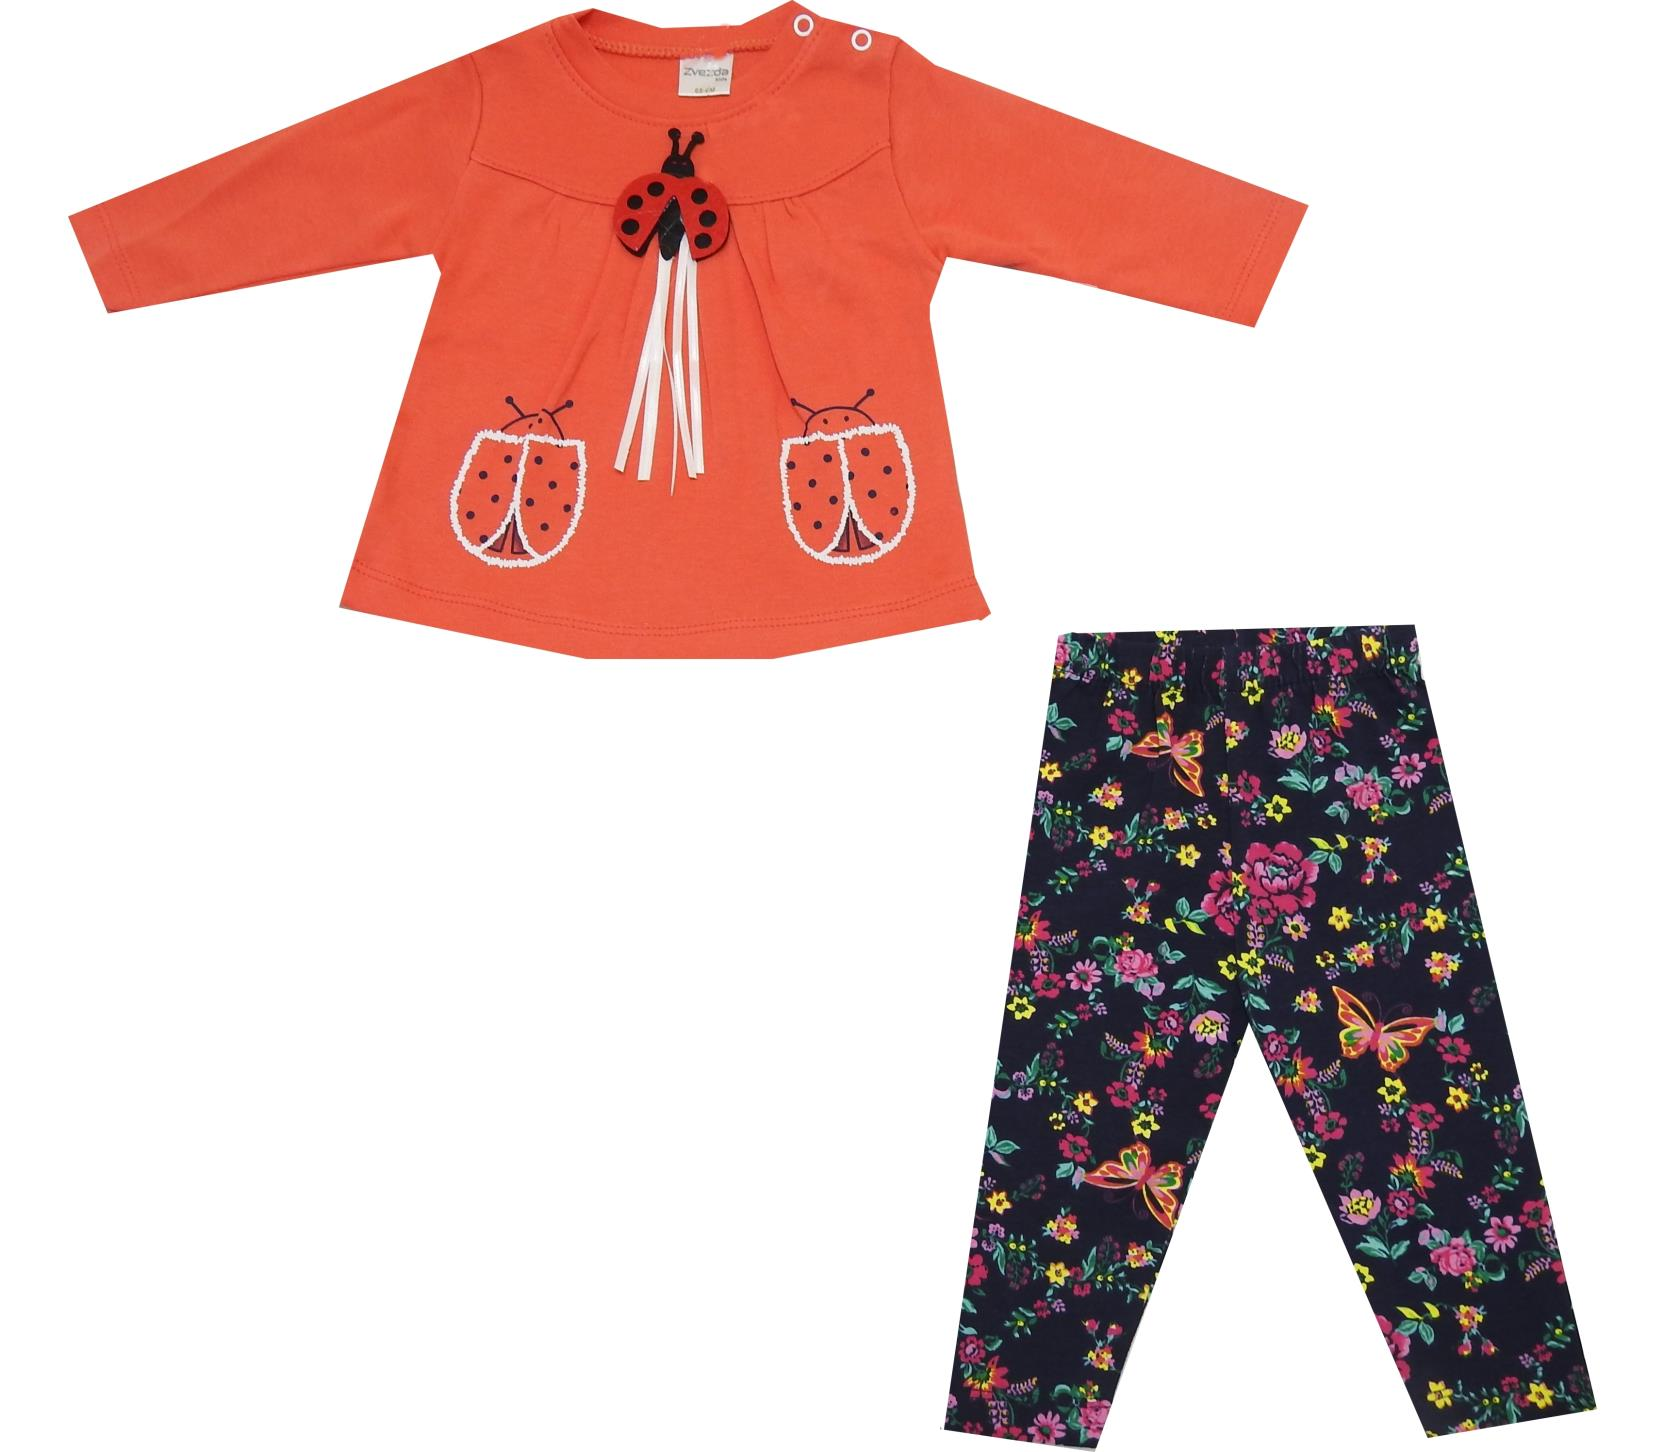 LADYBUG BUCKLE DOUBLE SET FOR GIRL (6-9-12 MONTH)